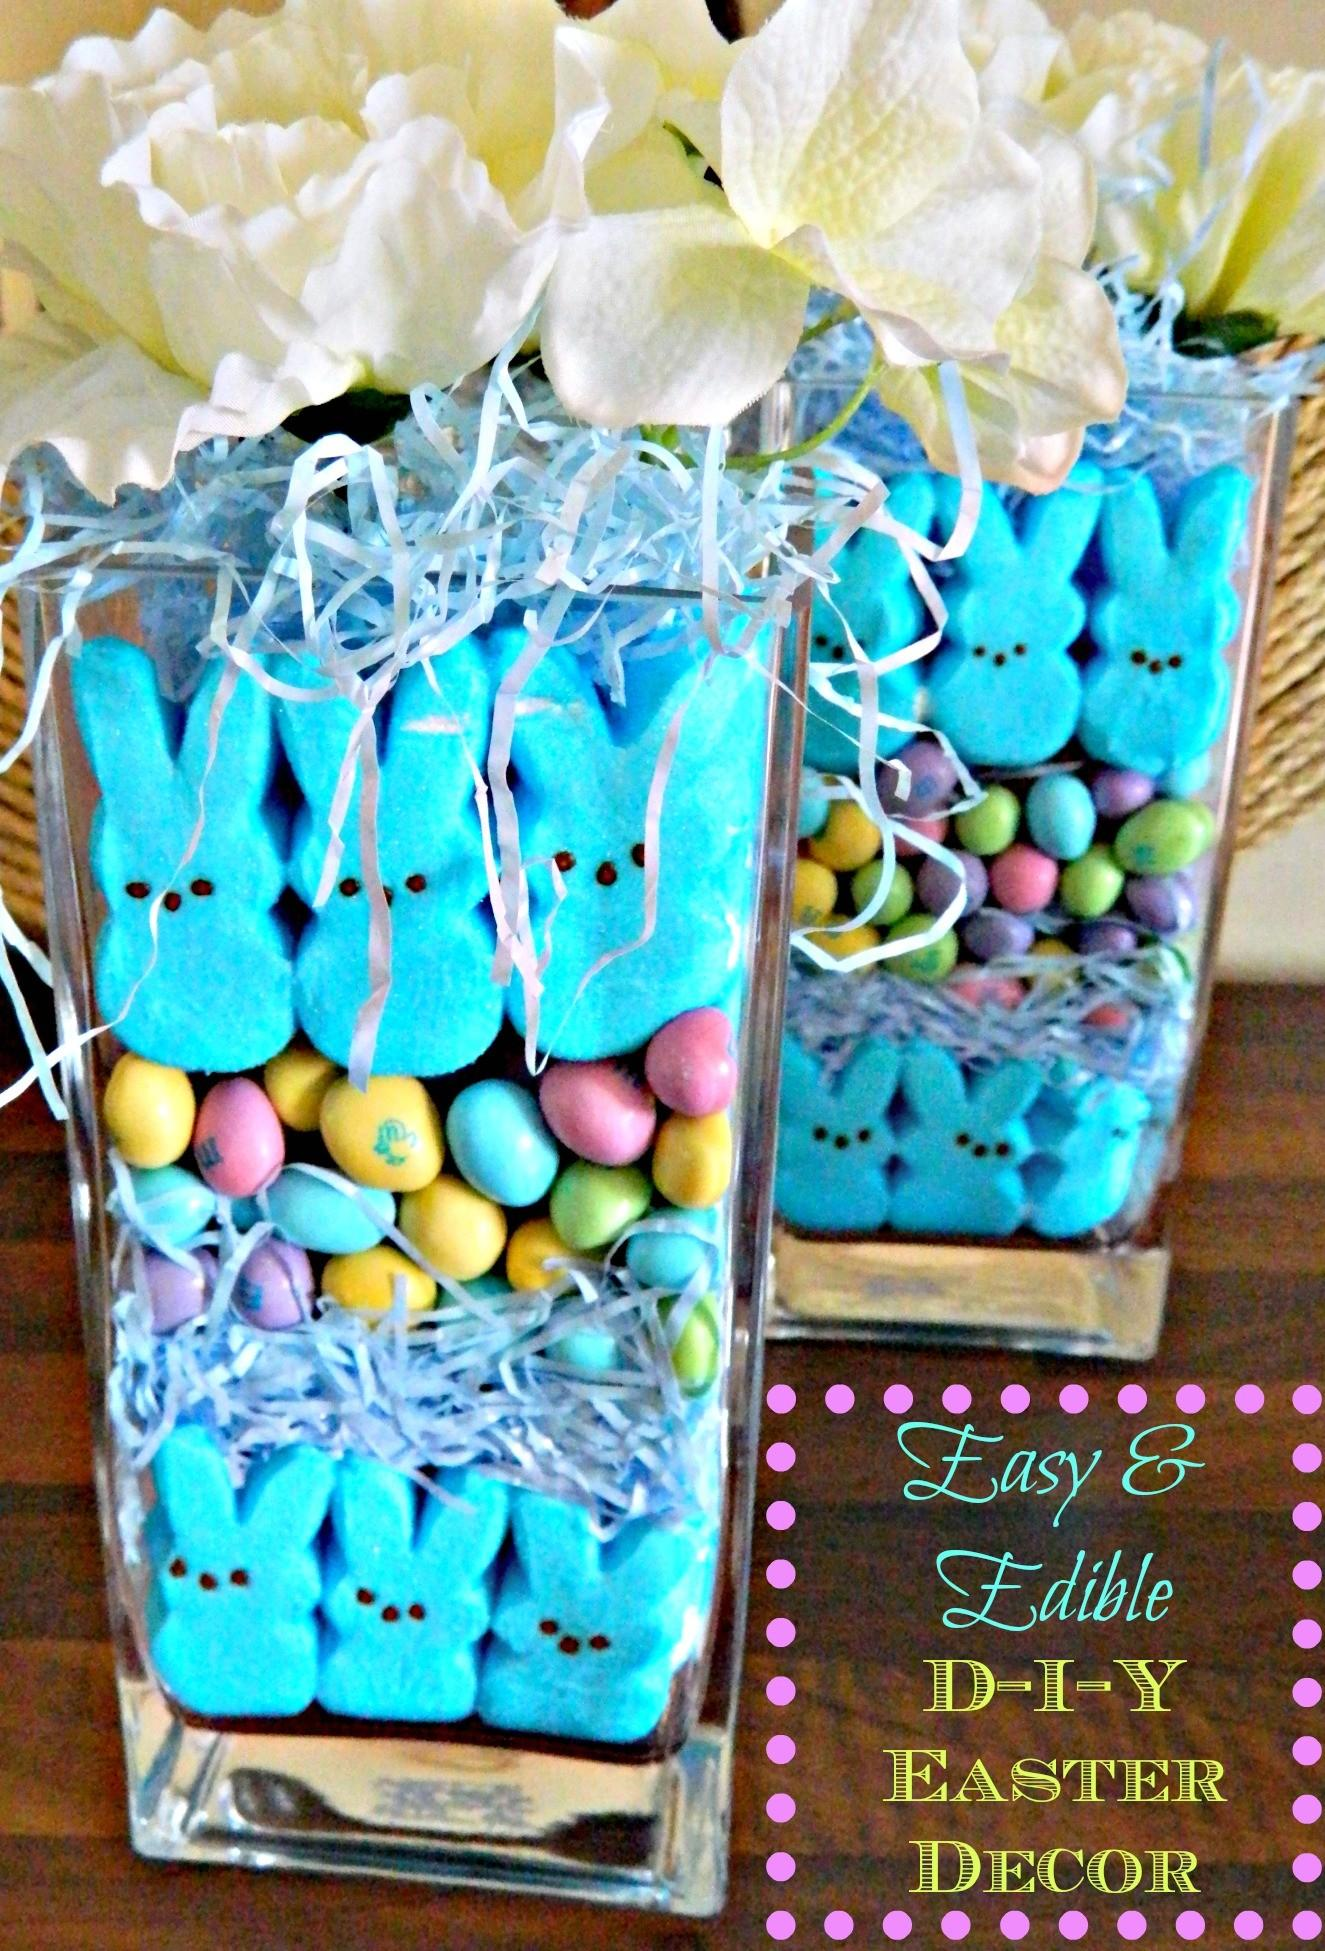 Easy Easter Decorations Finding Silver Linings